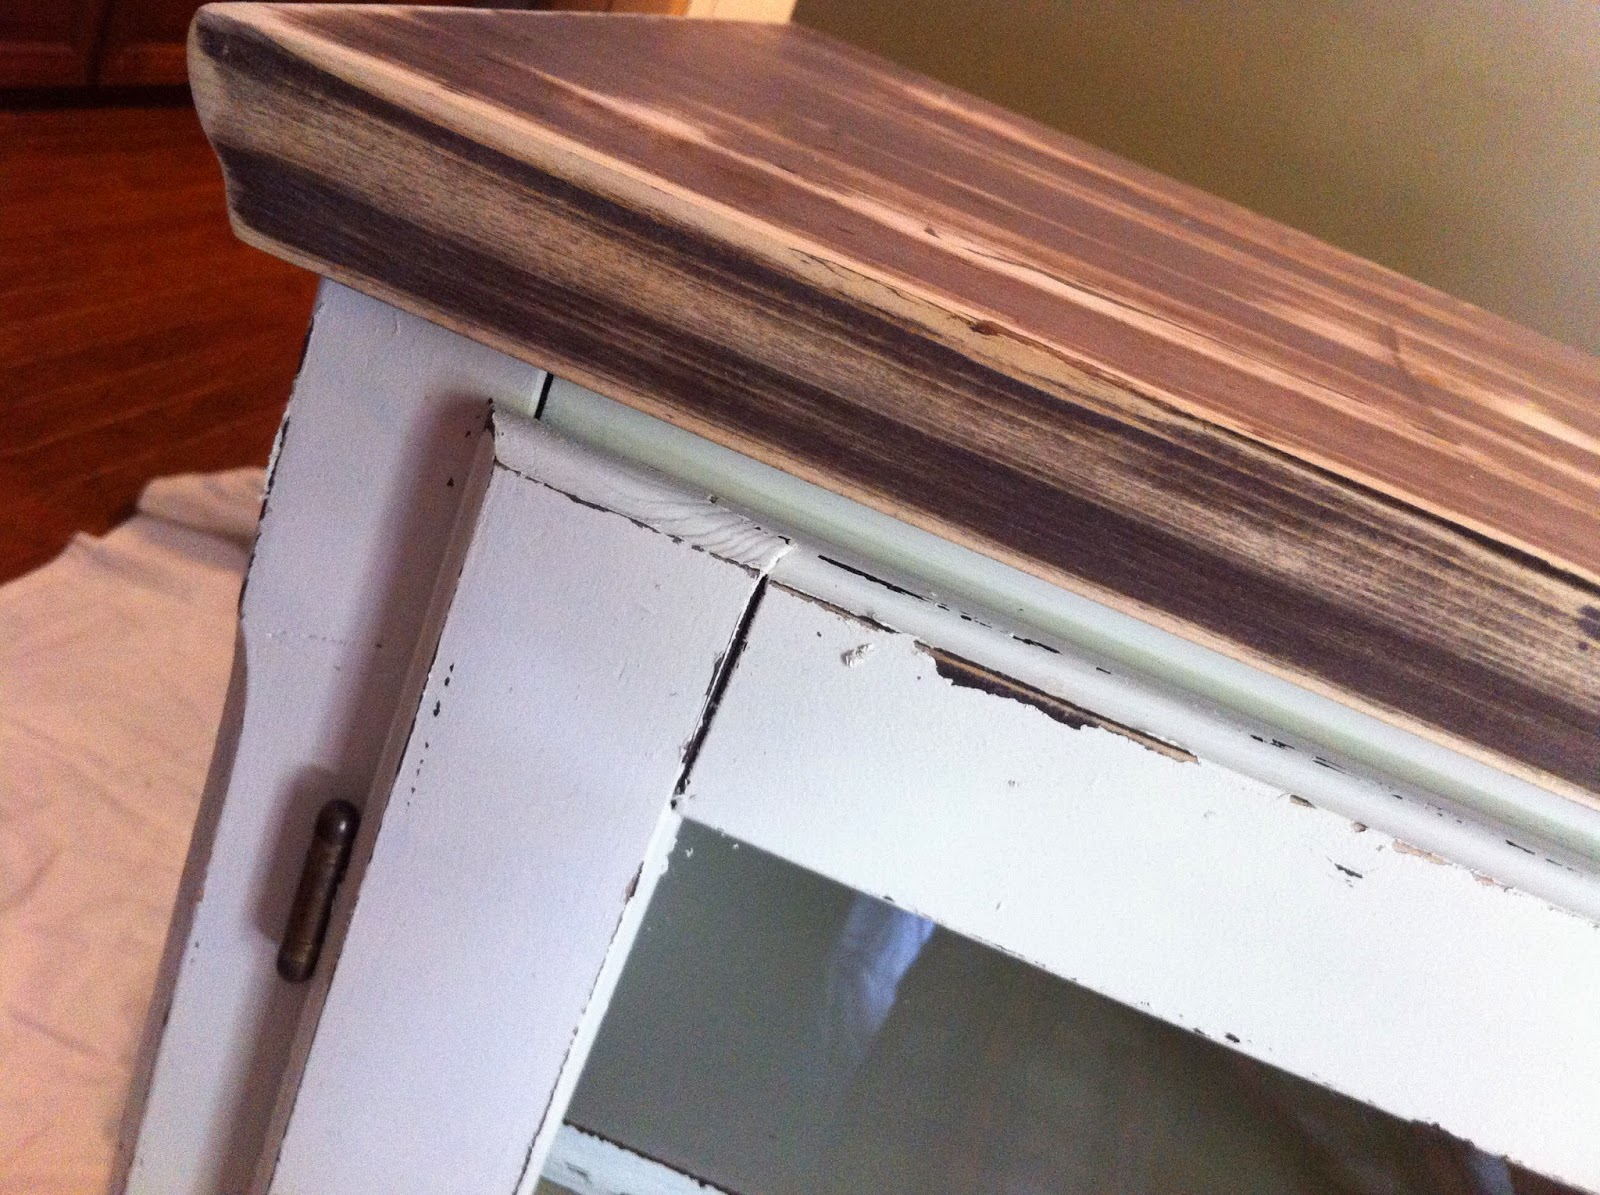 Distressed Media Cabinet - candlewax technique